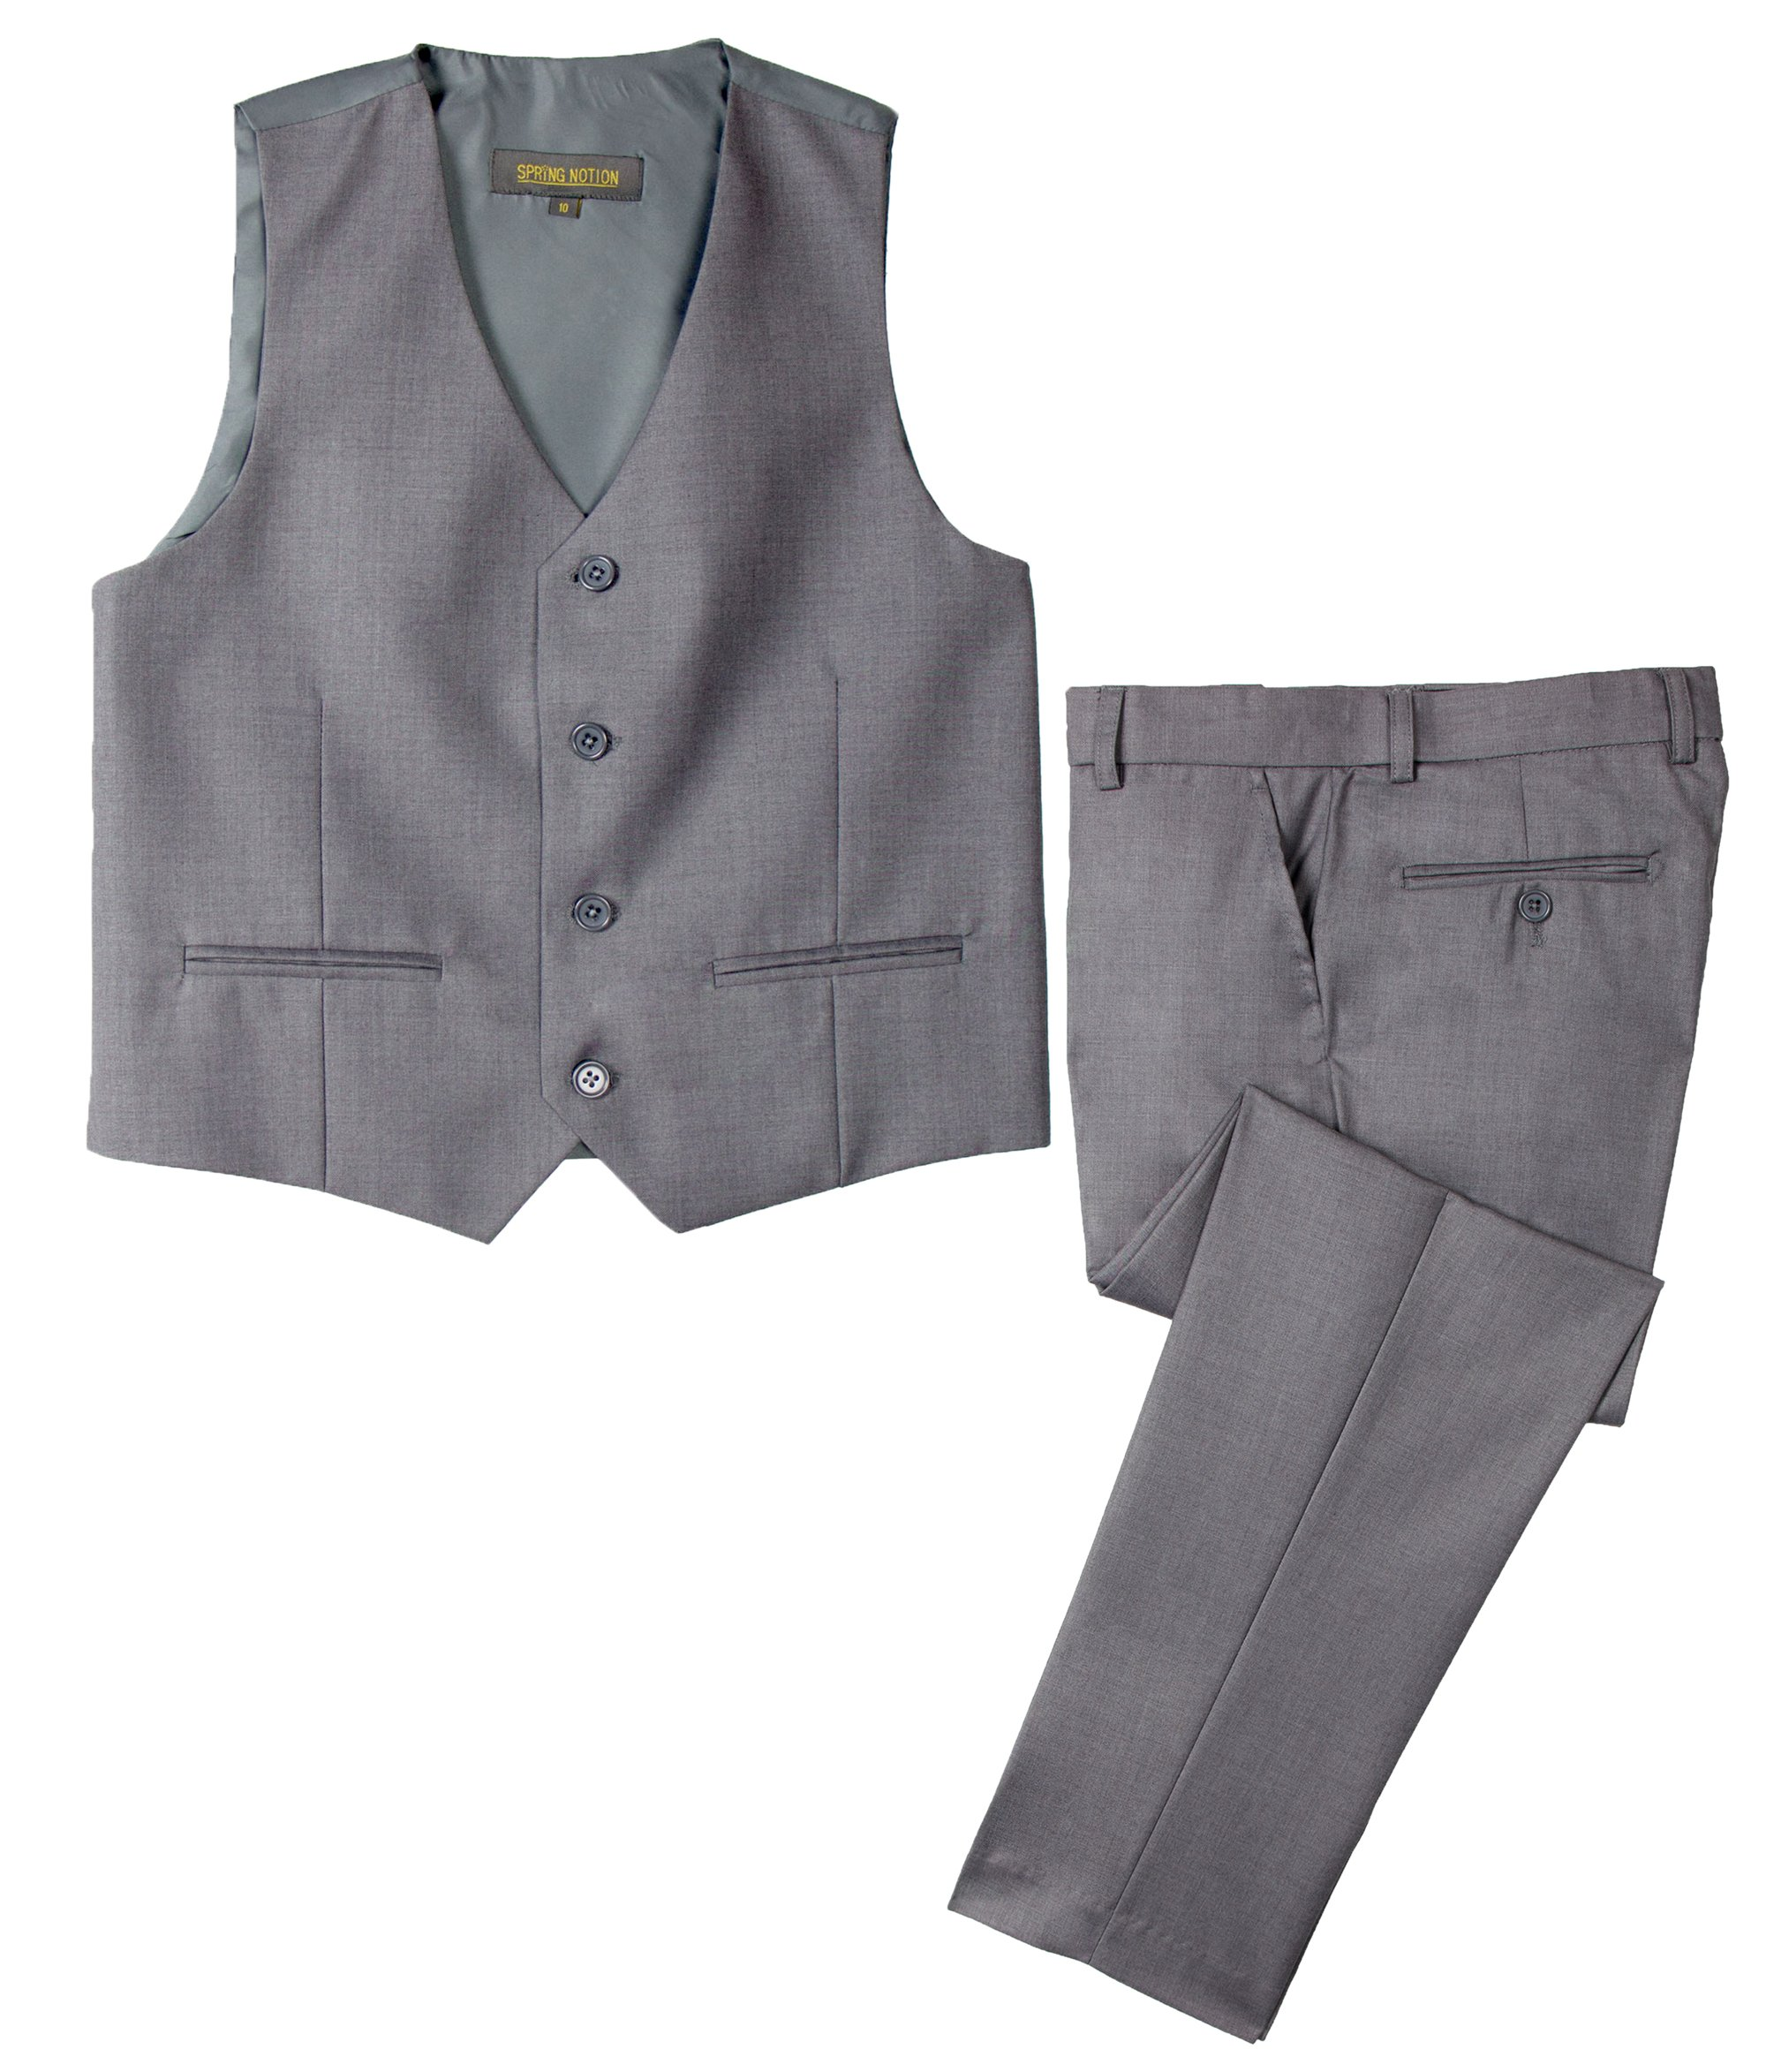 Spring Notion Big Boys' Two Button Suit Grey 16 Vest and Pants